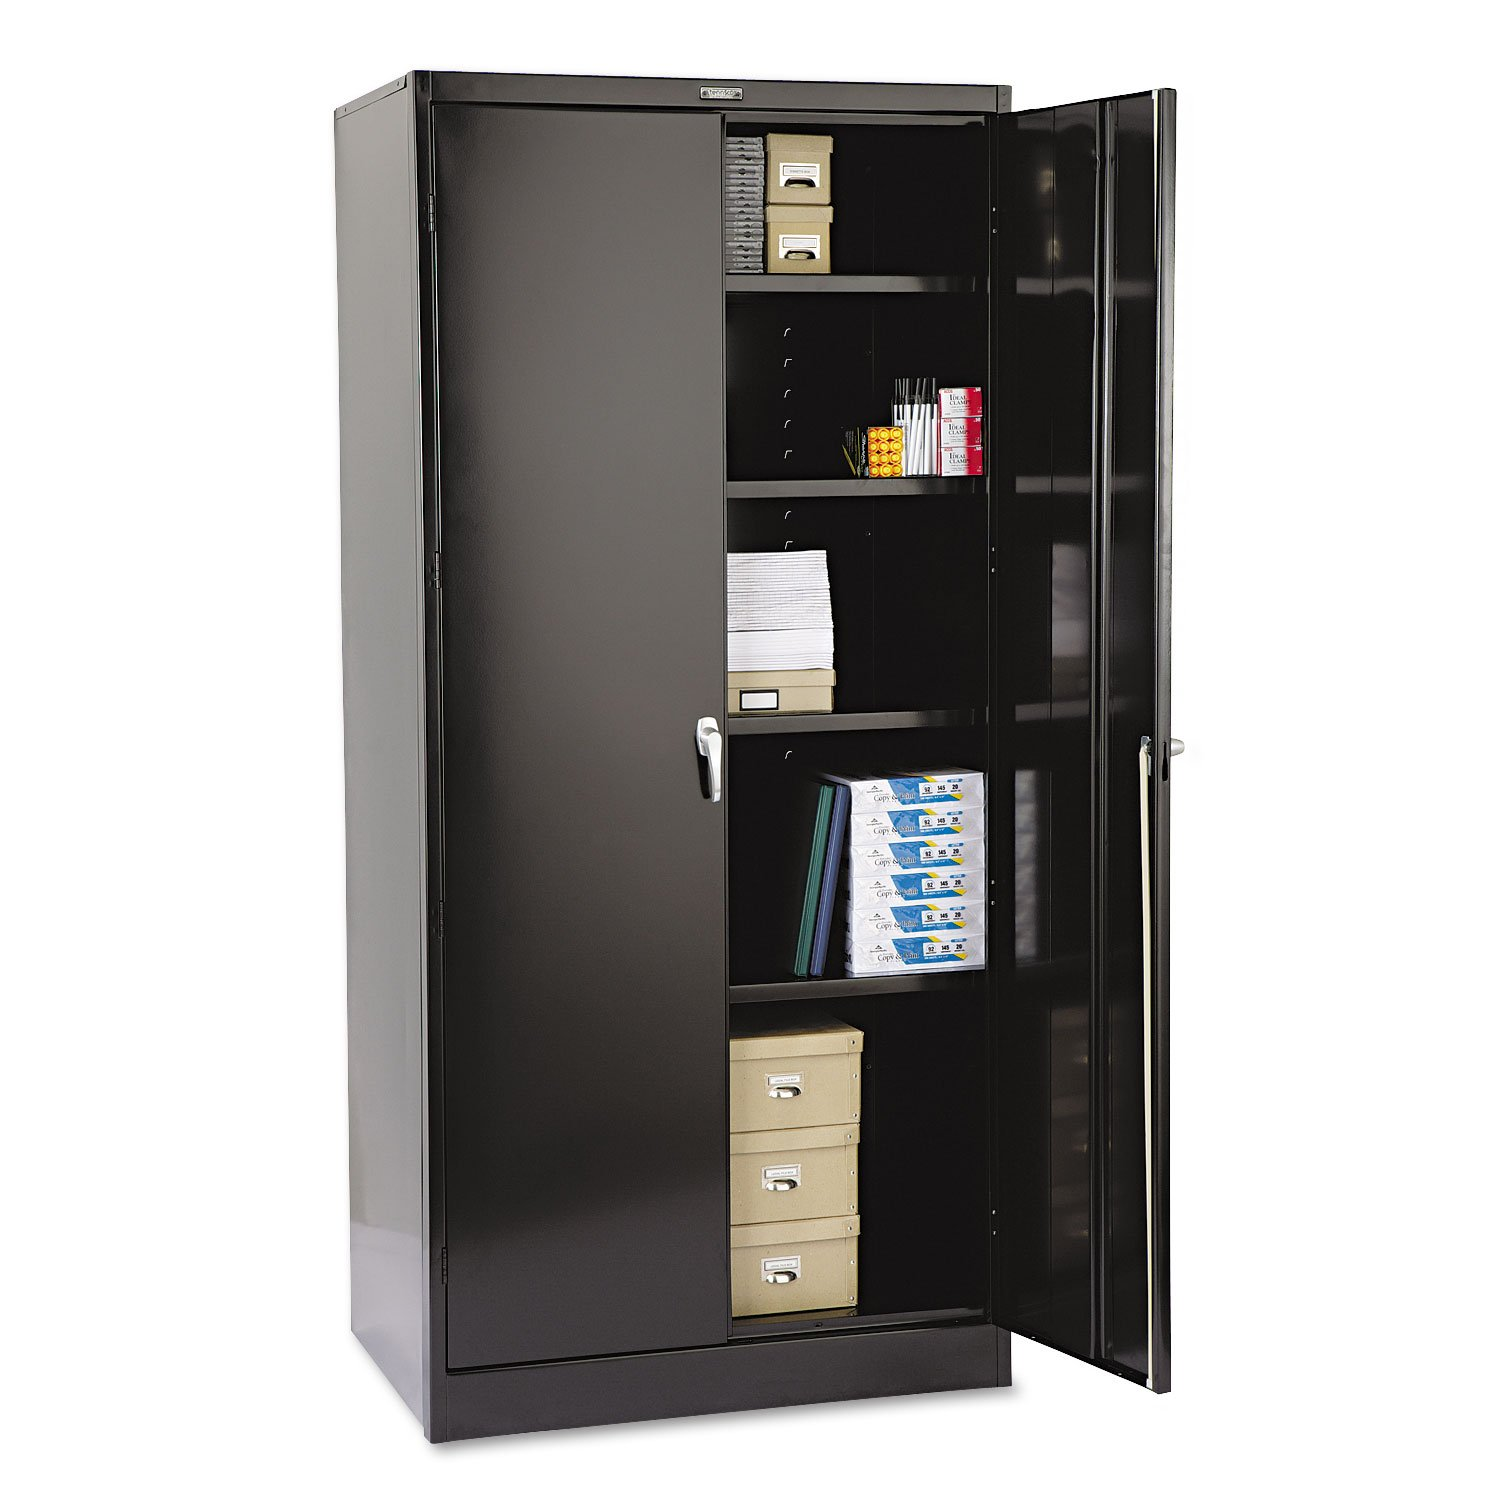 Tennsco 2470BK 36 by 24 by 78-Inch Deluxe Steel Storage Cabinet with 4 Adjustable Shelves, Black